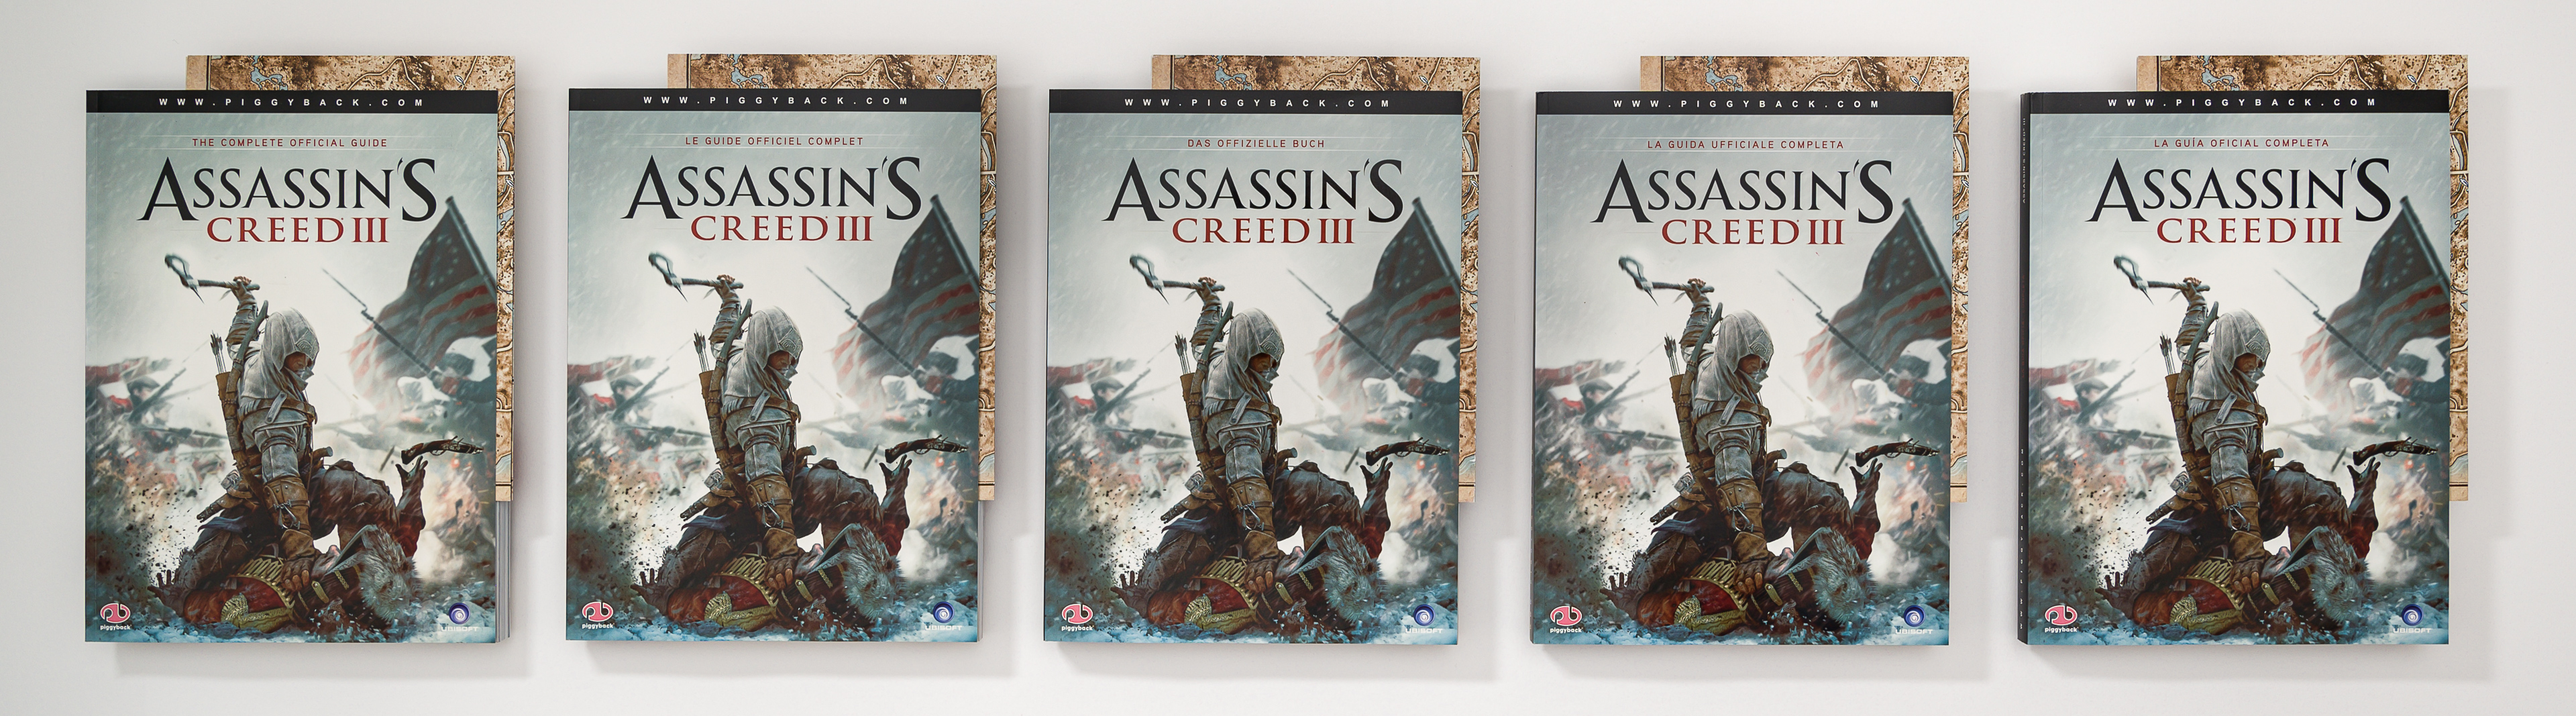 AC3_EFIGS_GUIDE-COLLAGE+POS-1